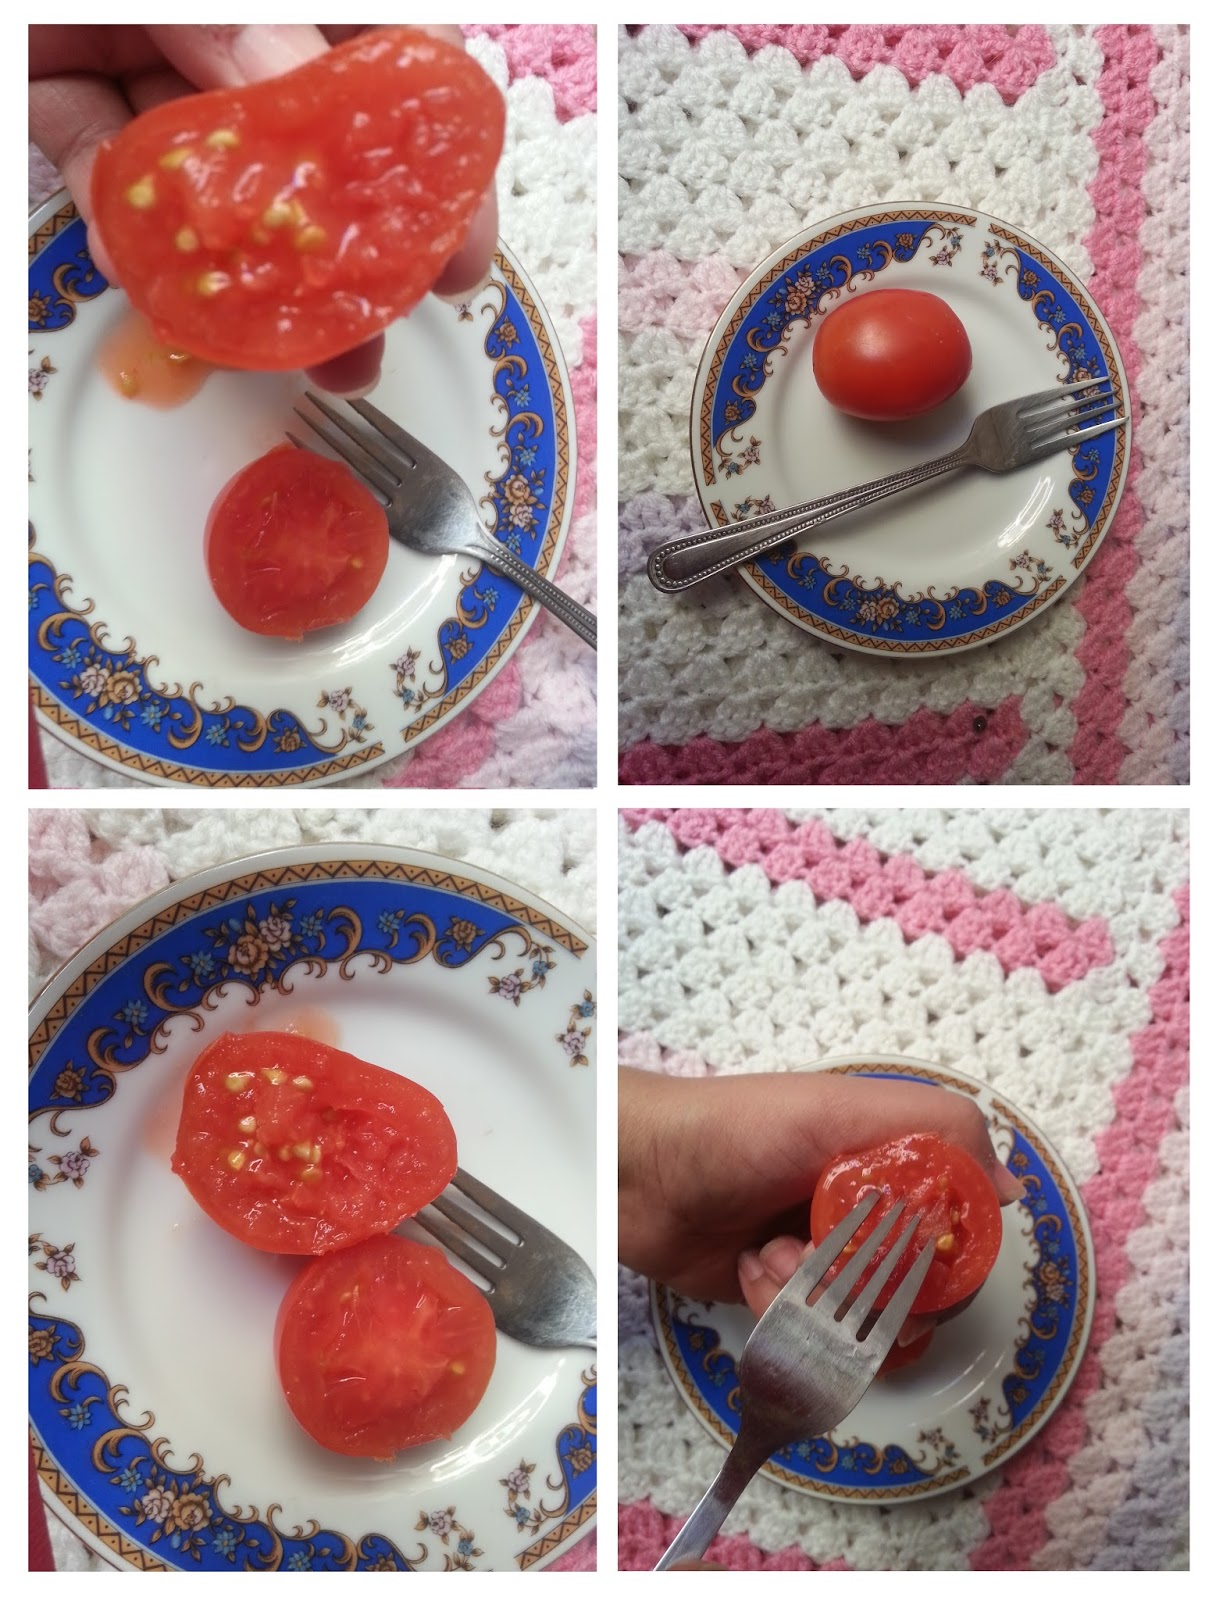 Tomato Juice Mask for combination skin type